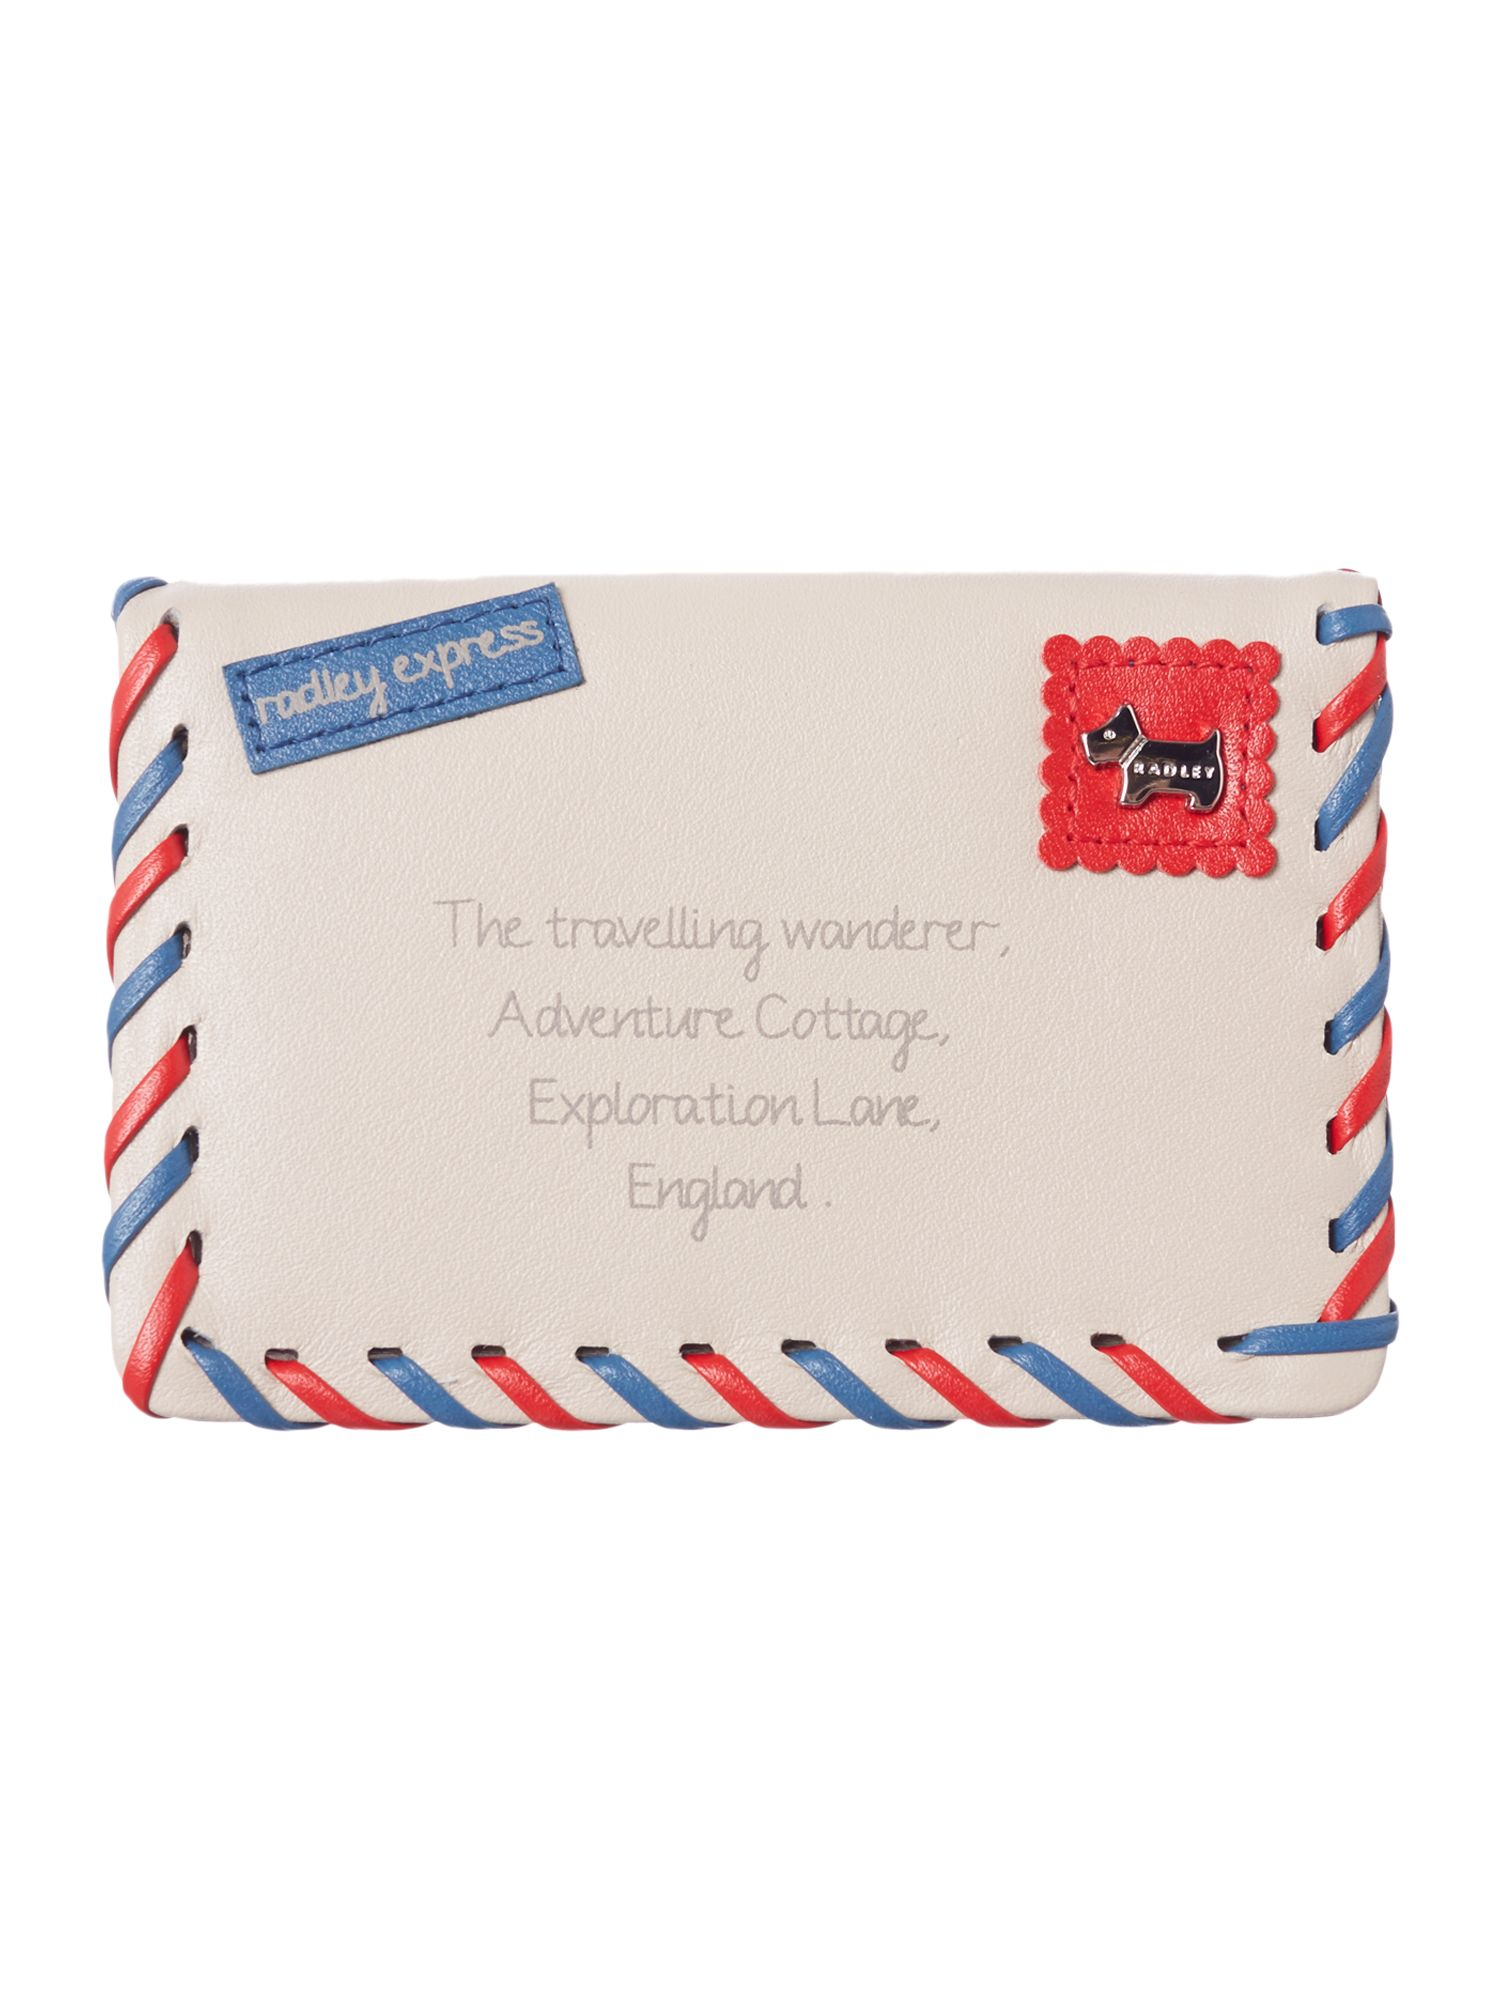 The travelling wanderer travelcard holder